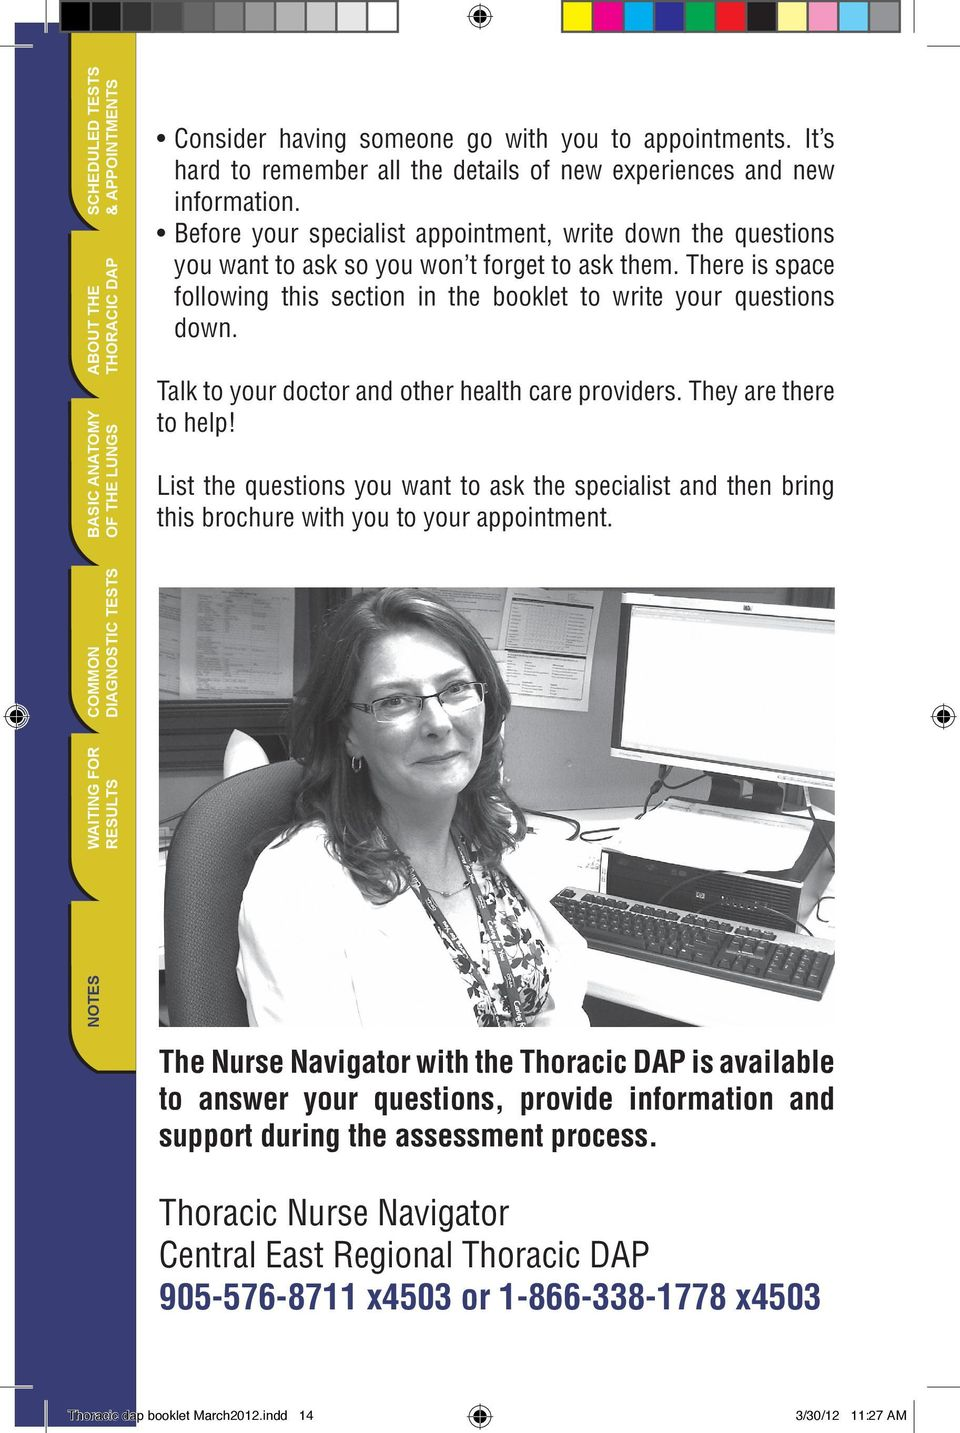 Talk to your doctor and other health care providers. They are there to help! List the questions you want to ask the specialist and then bring this brochure with you to your appointment.